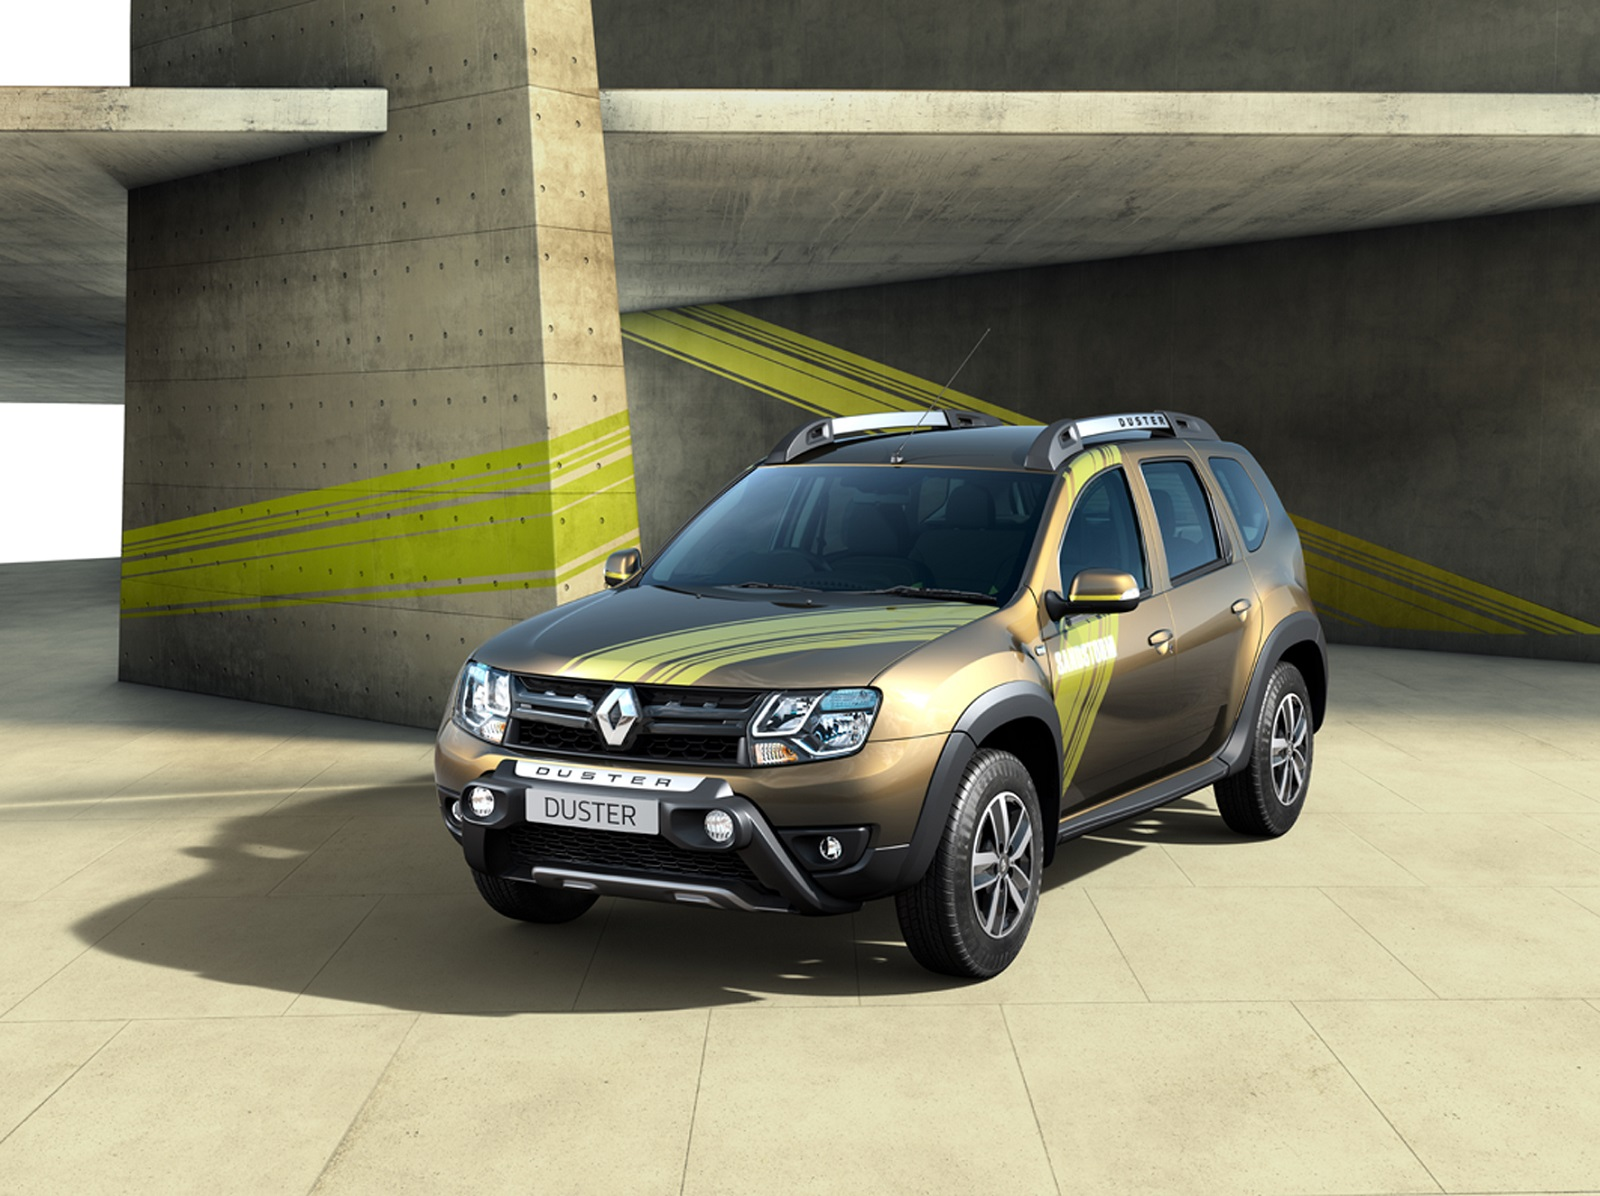 2017 renault duster sandstorm launched at rs 10 40 lakh autocar india